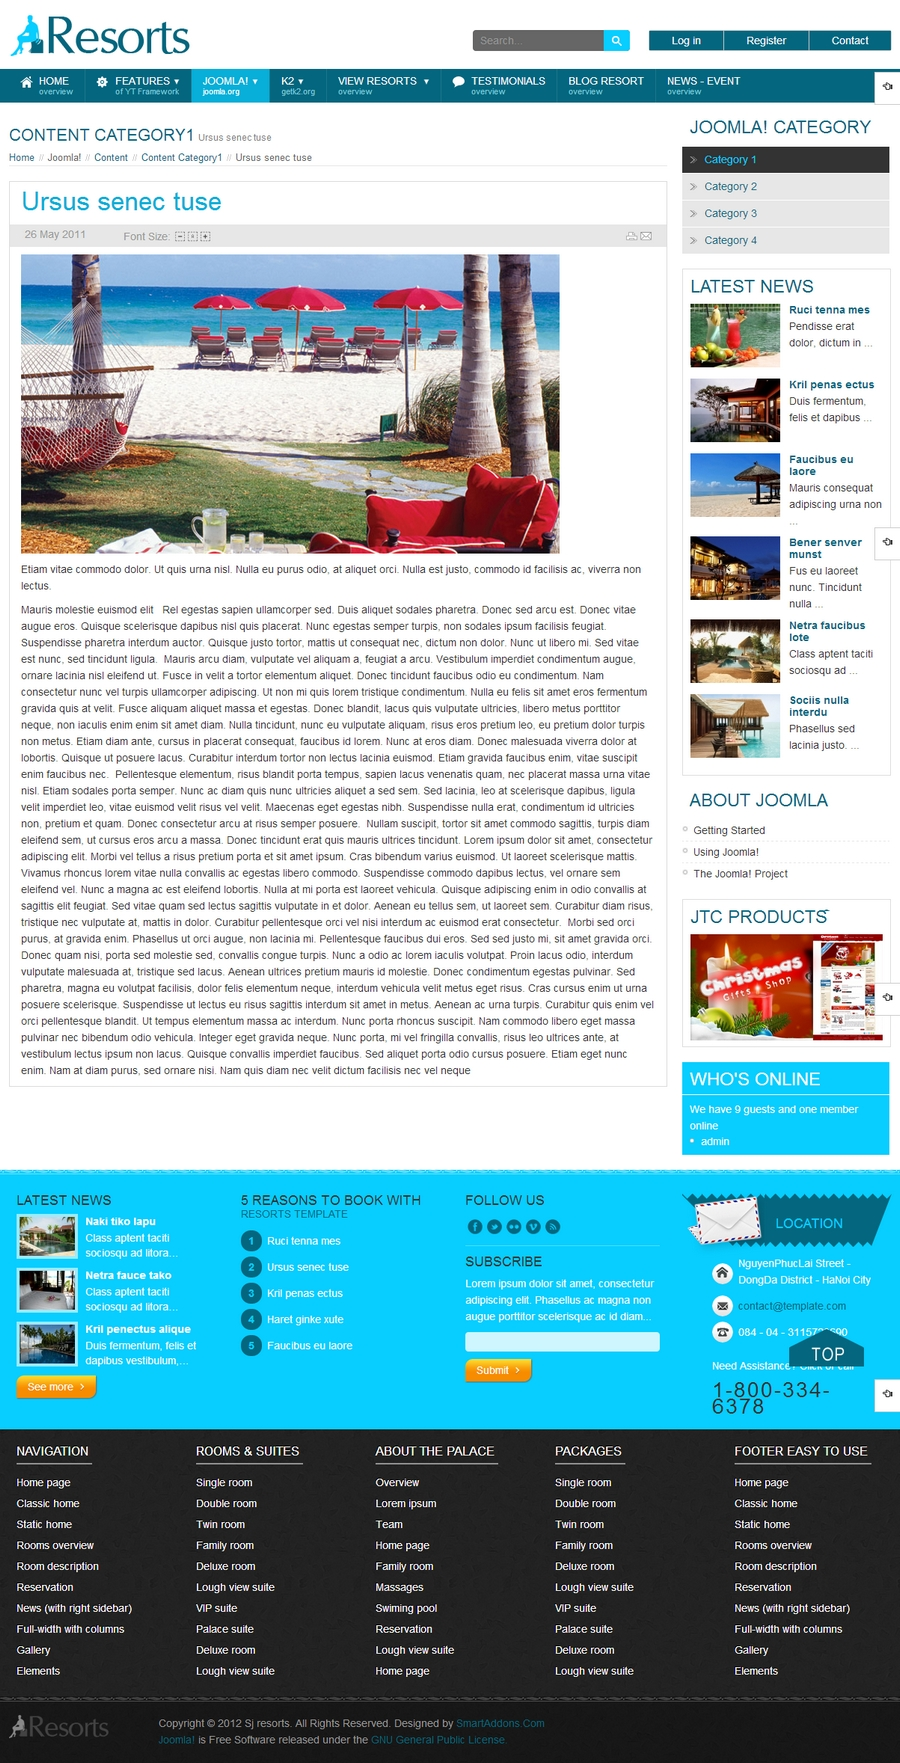 SJ Resorts - Responsive Joomla Resorts & spa Template - 03detail.jpg